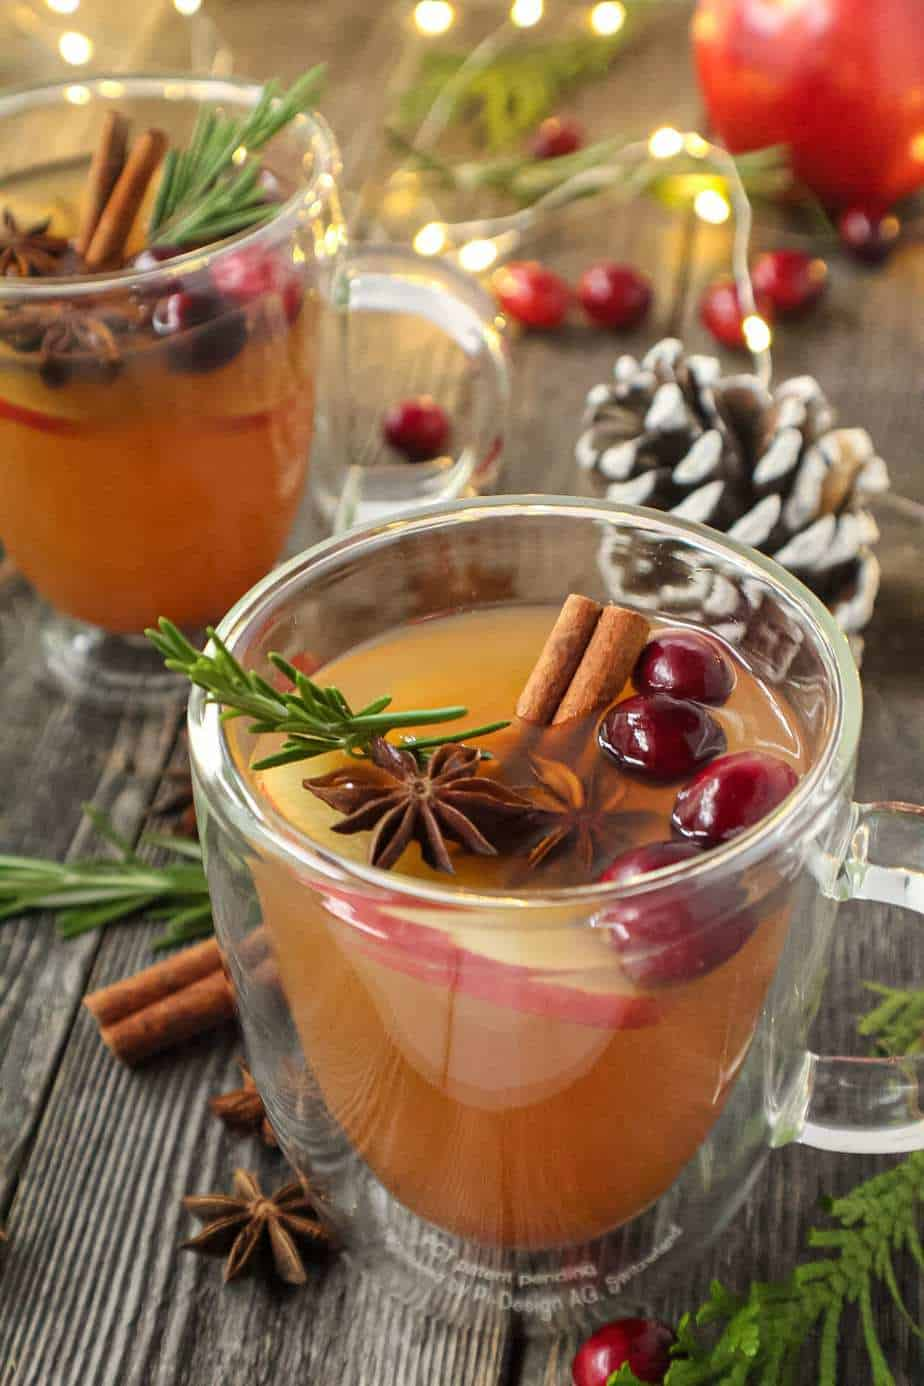 mulled apple cider served in clear mugs garnished with cinnamon sticks, star anise and cranberries on top of wooden surface